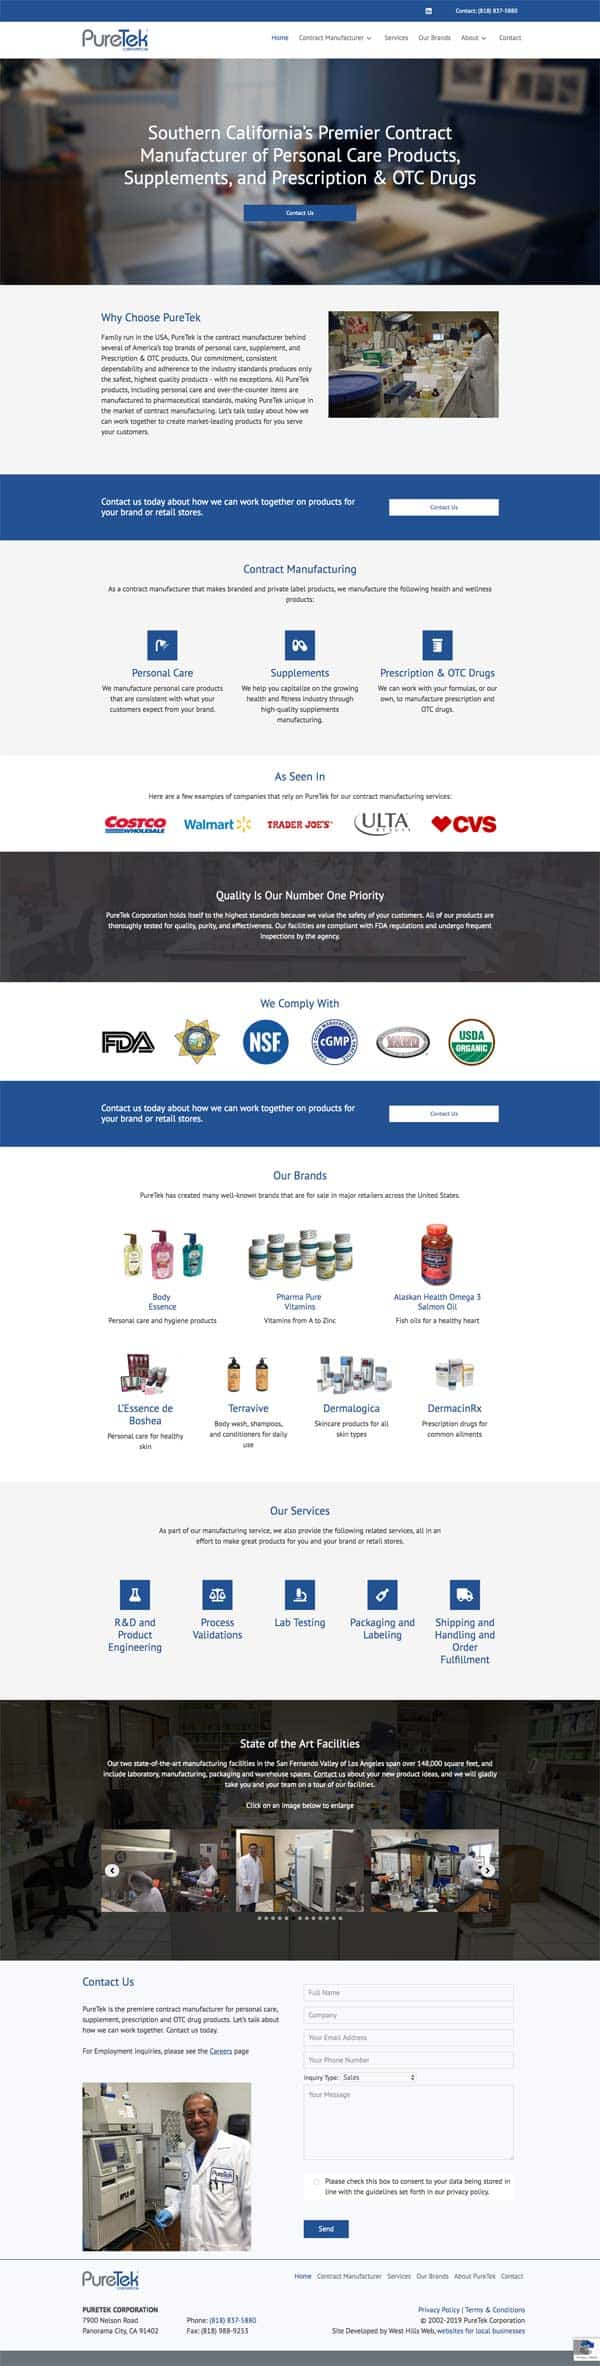 Puretek Corp. - Contract Manufacturer of Personal Care Products, Supplements, and Prescription & OTC Drugs